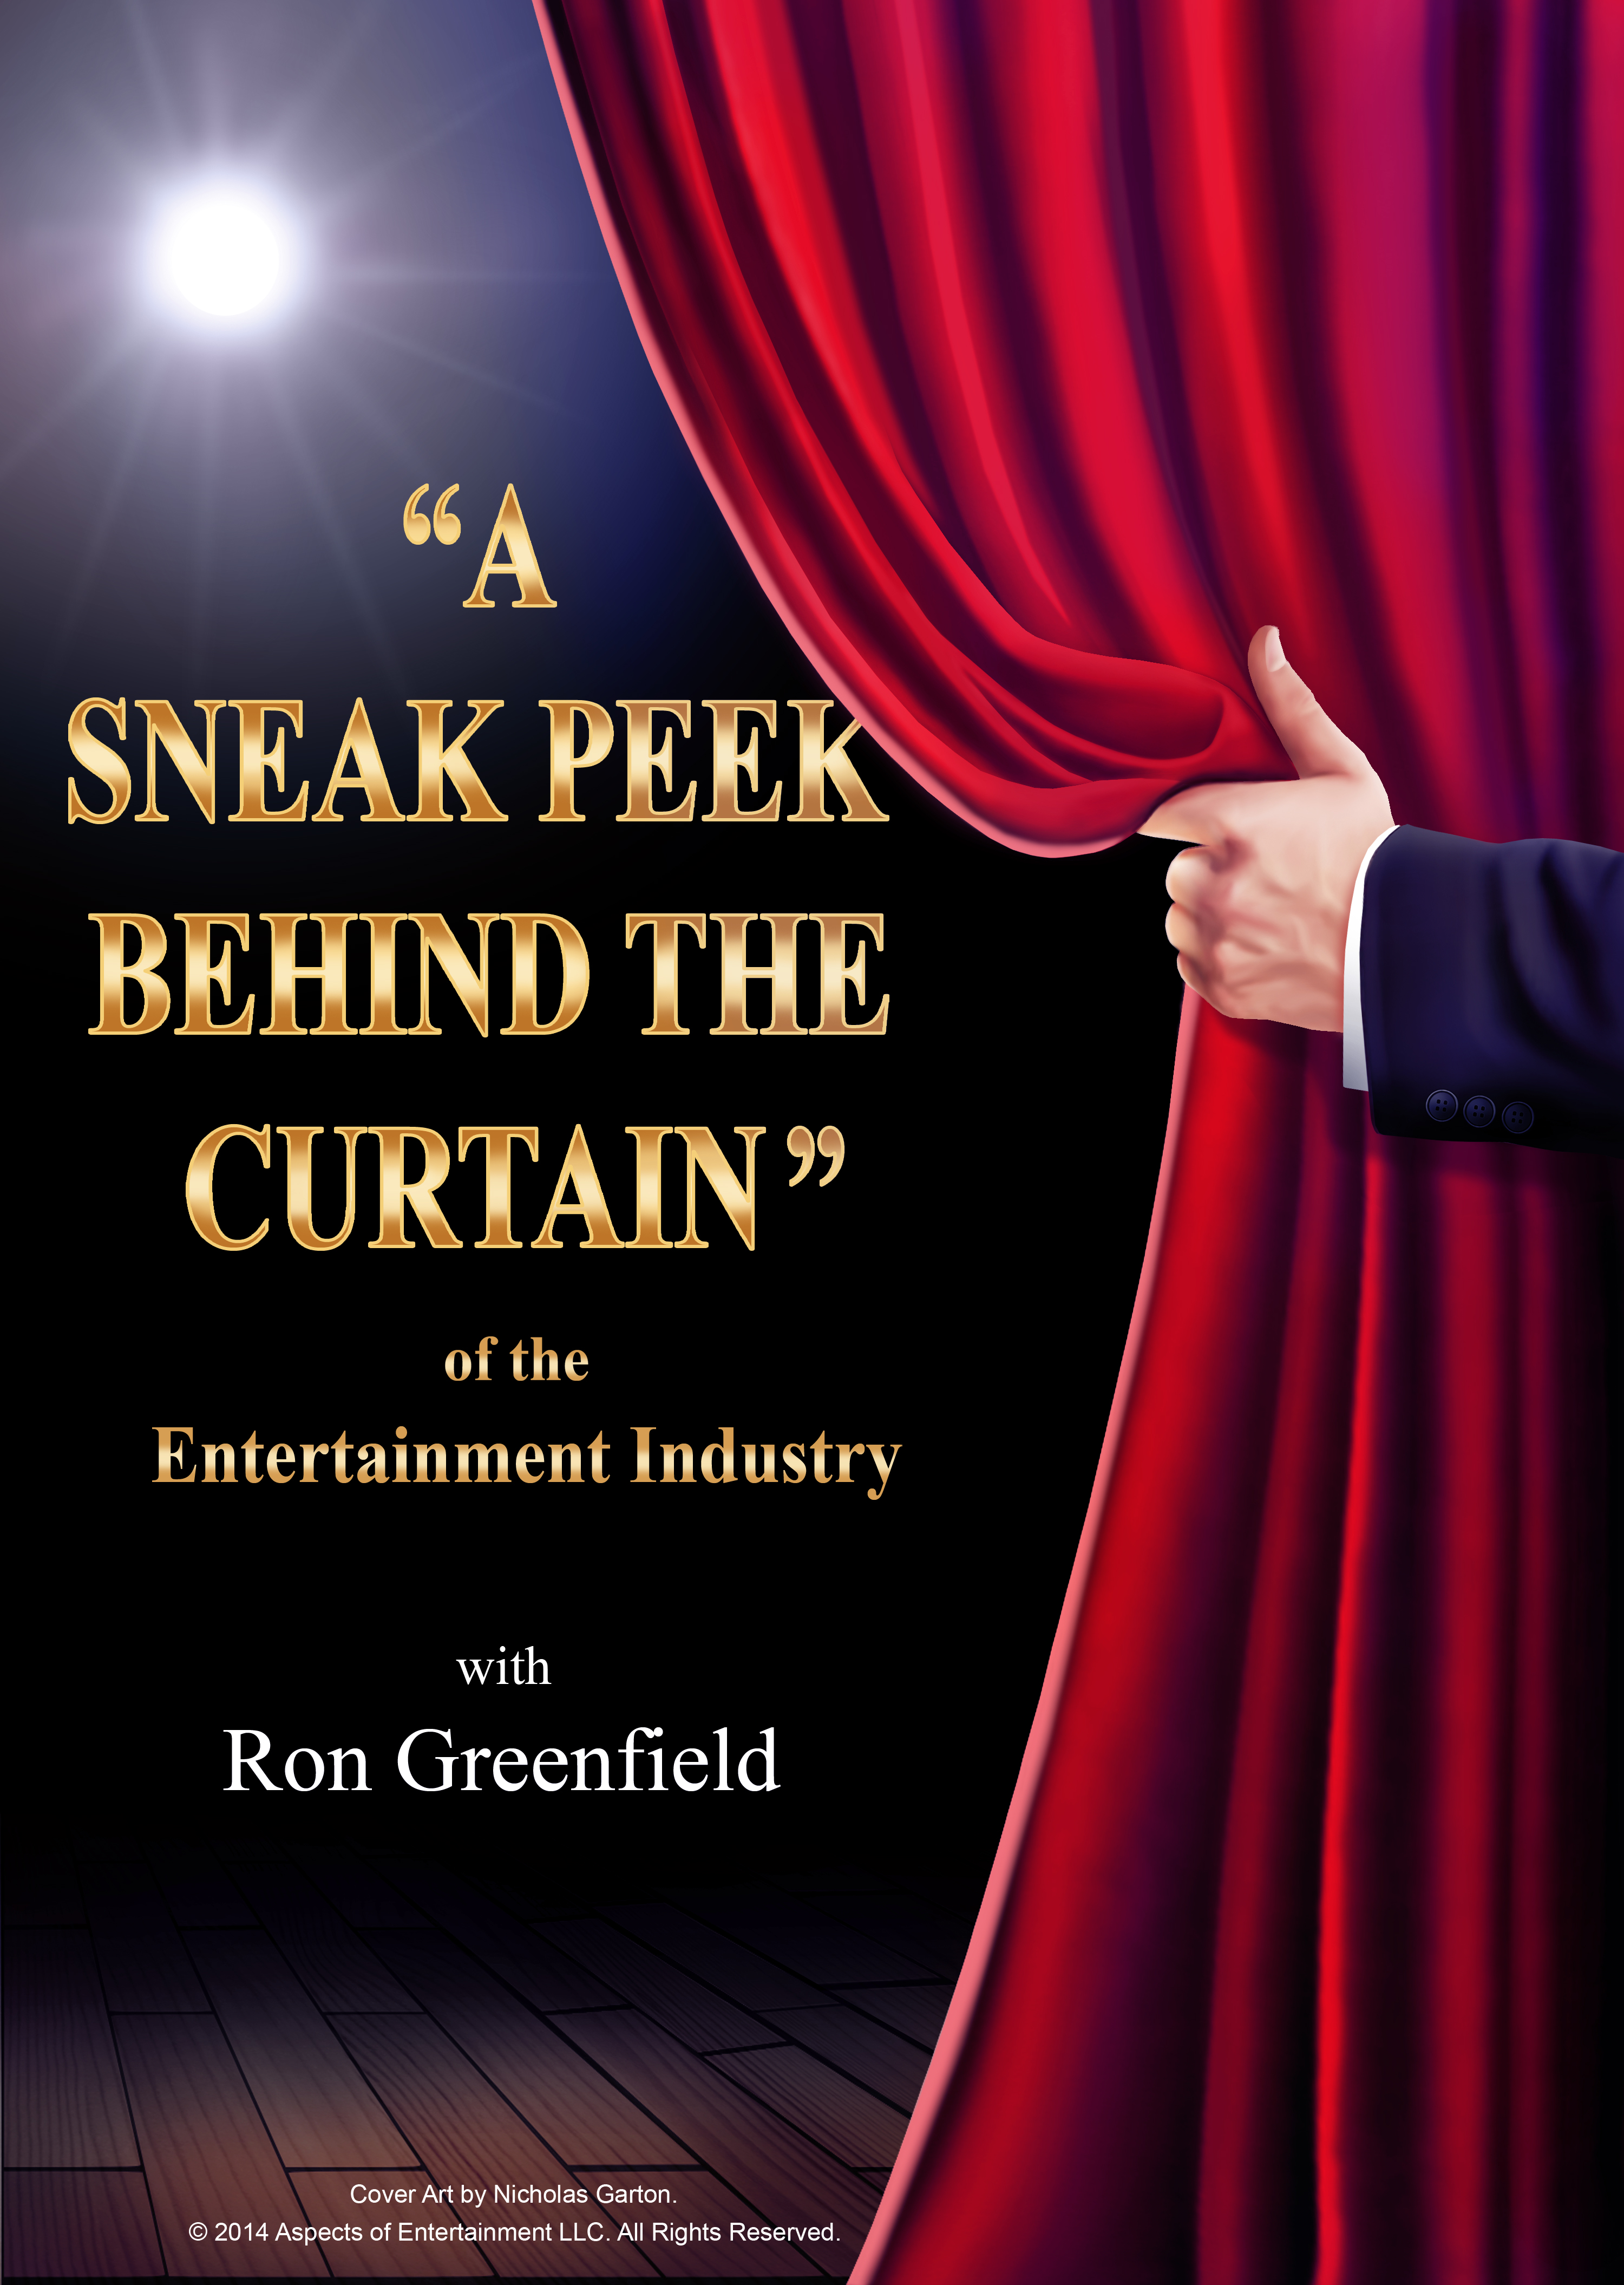 Aspects Entertainment An Interview With Ron Greenfield